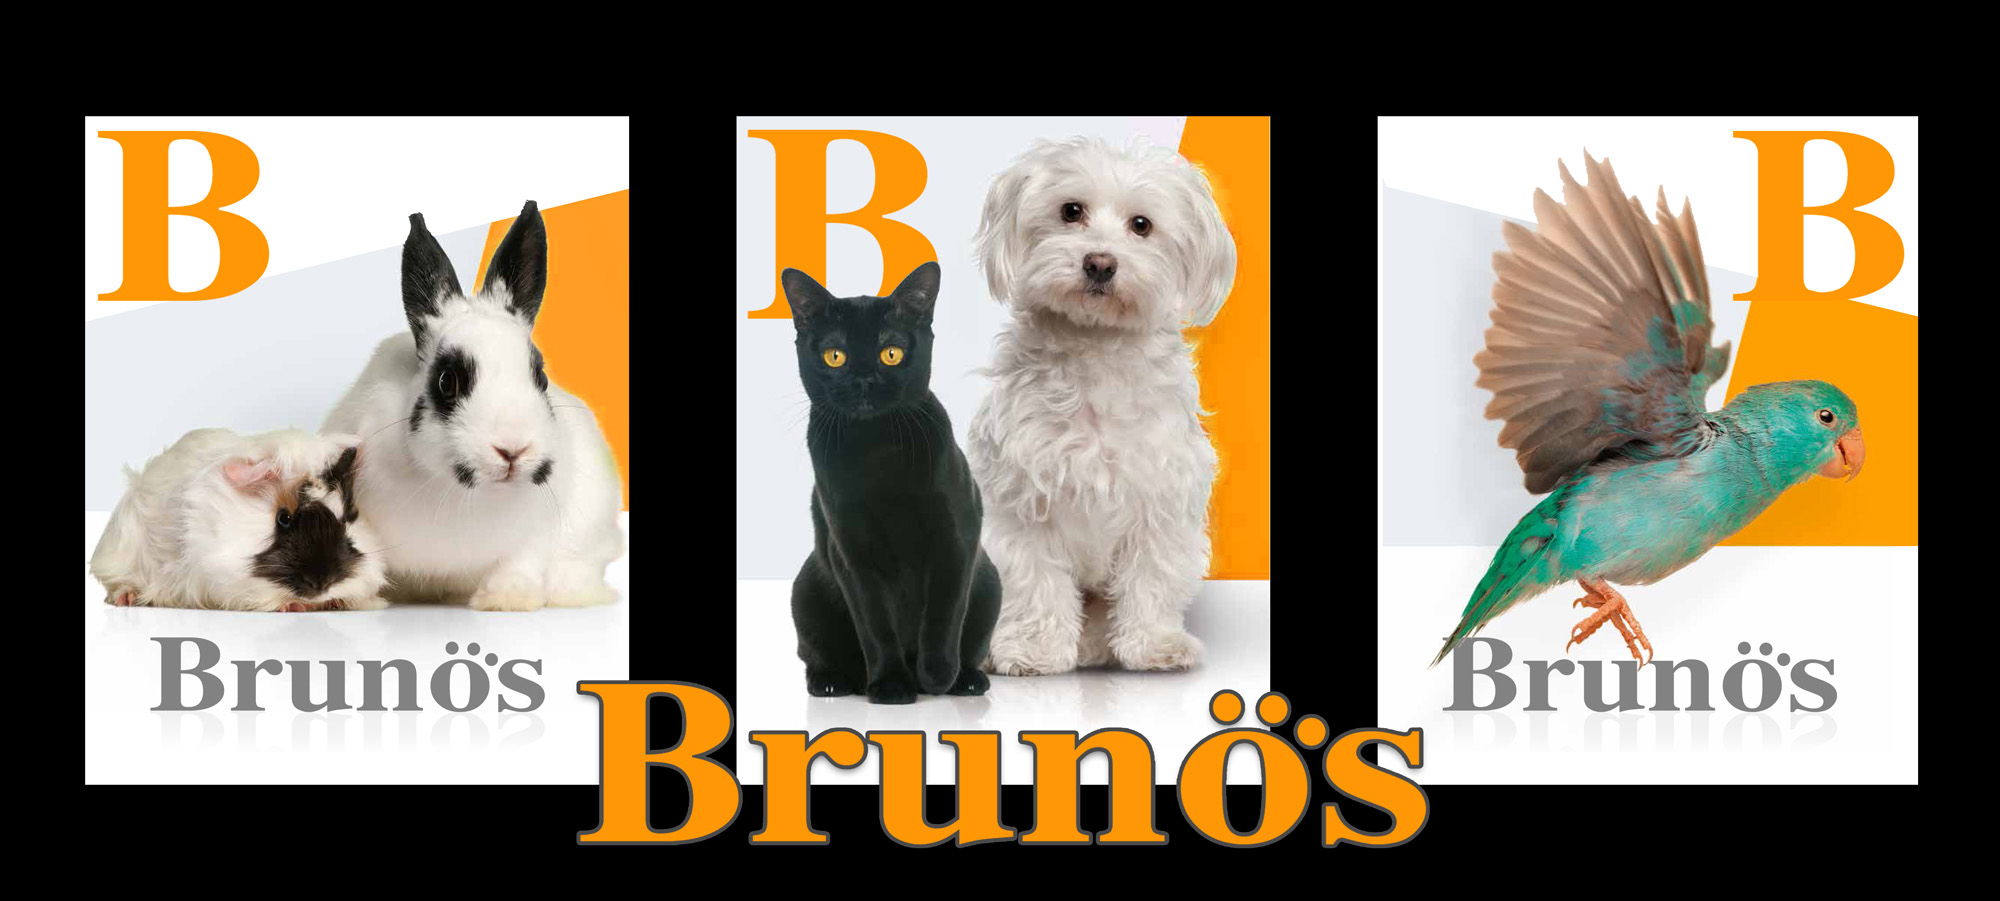 brunos pet shop